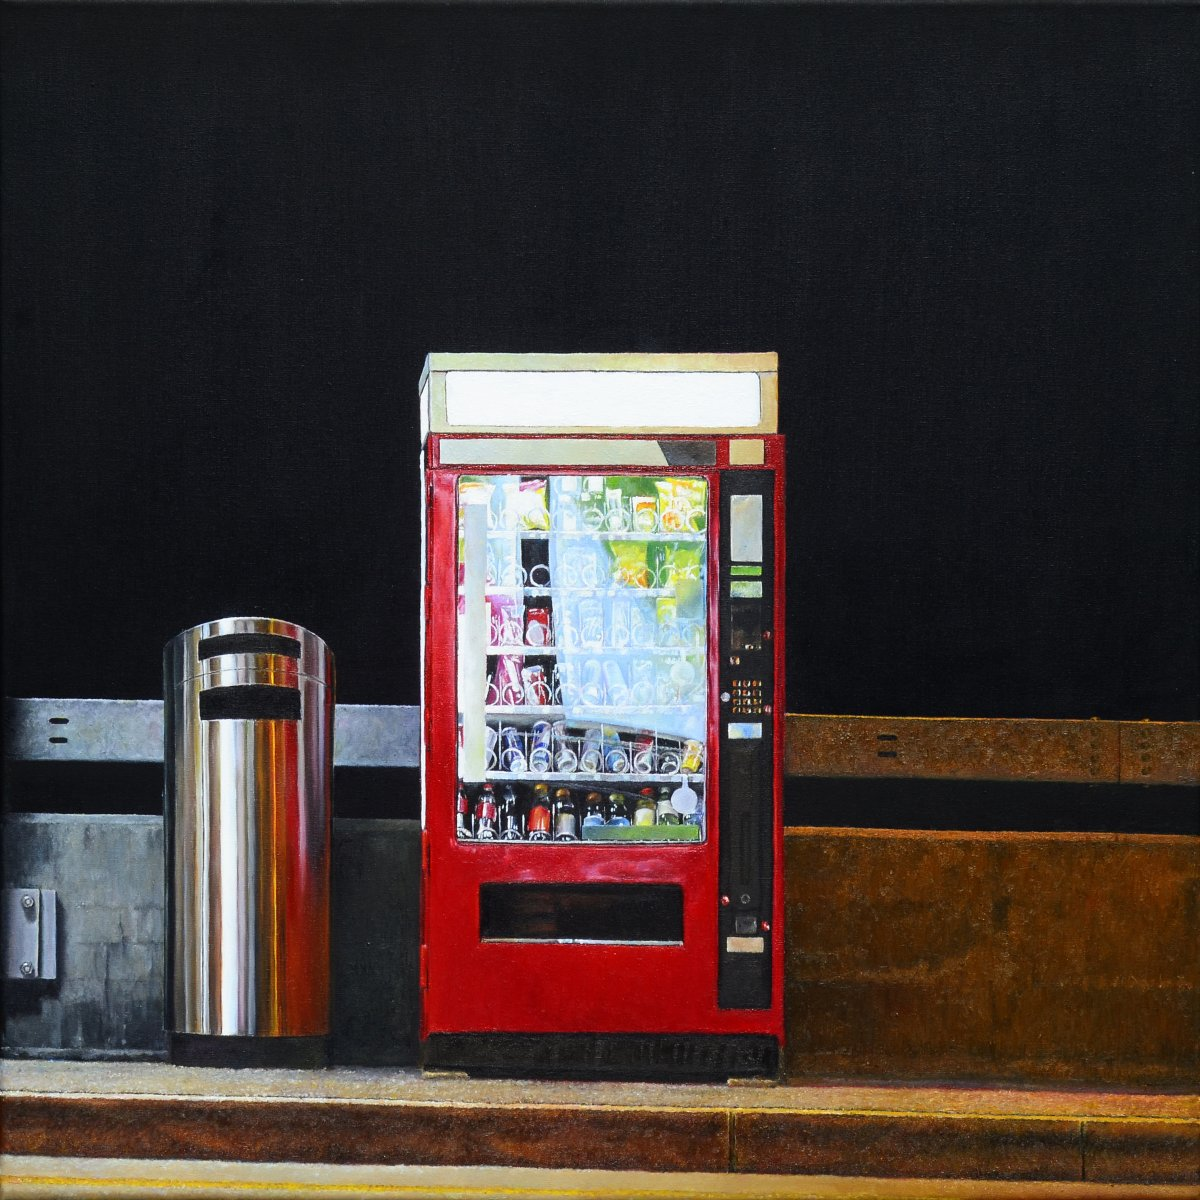 Food Vending Machine - Christoph Eberle